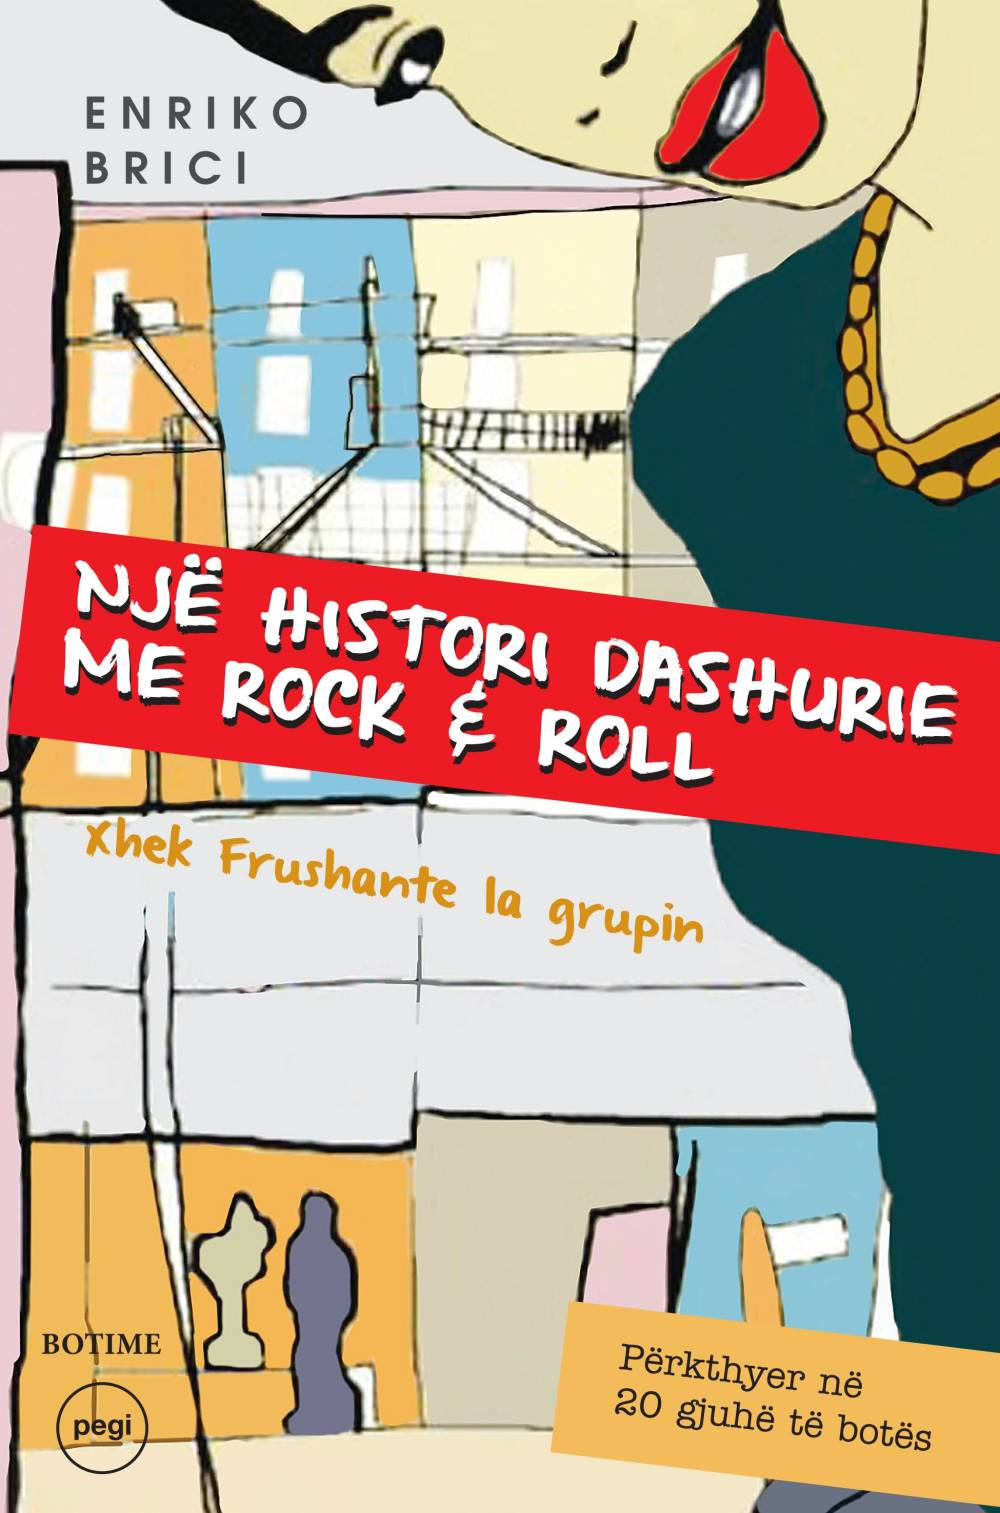 images/book-images/histori-dashurie-me-rock-e-roll.jpg